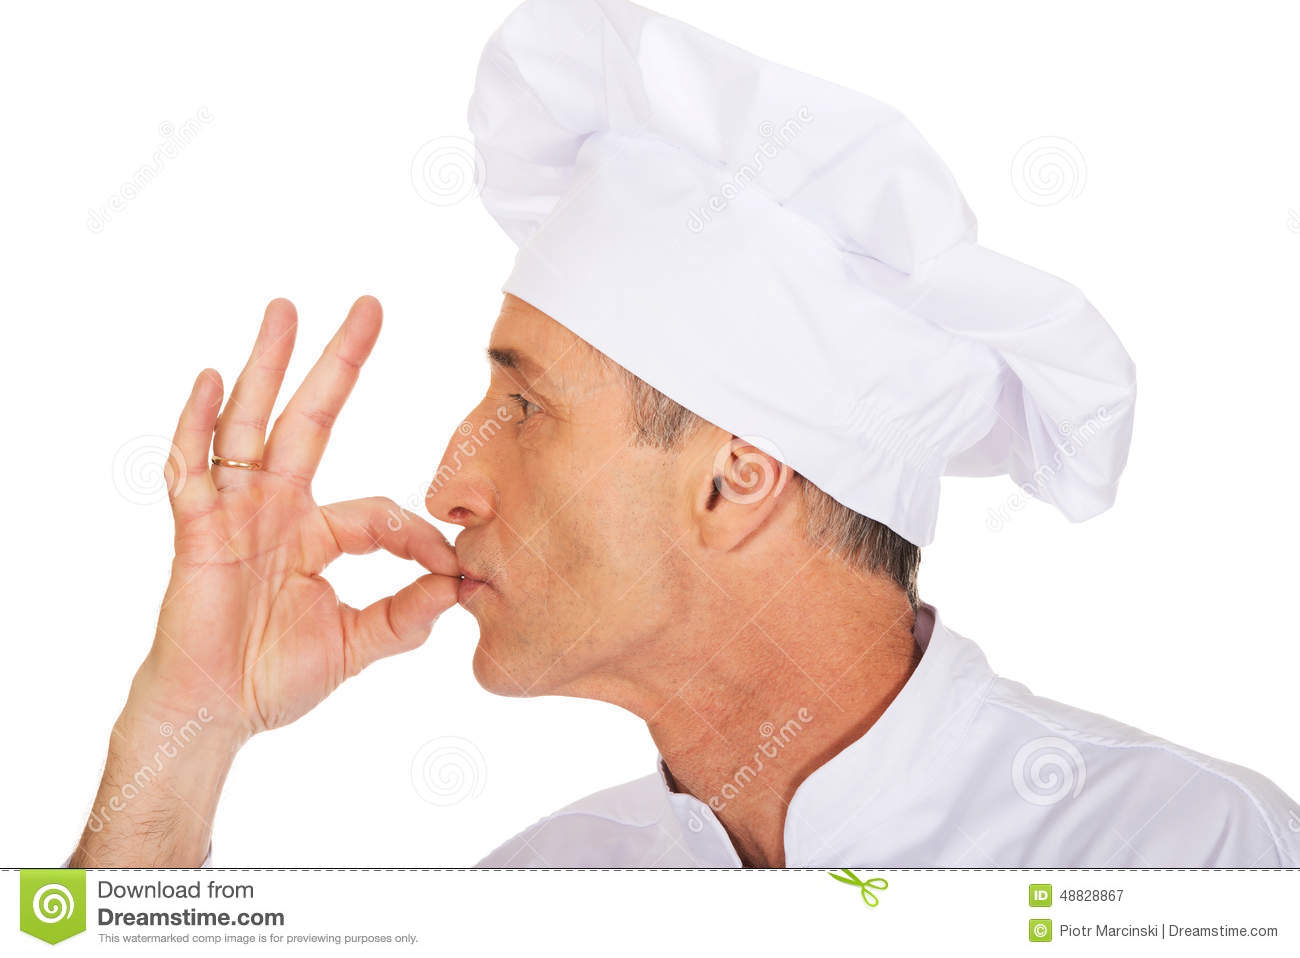 https://thumbs.dreamstime.com/z/chef-white-hat-approval-gesture-professional-taste-48828867.jpg